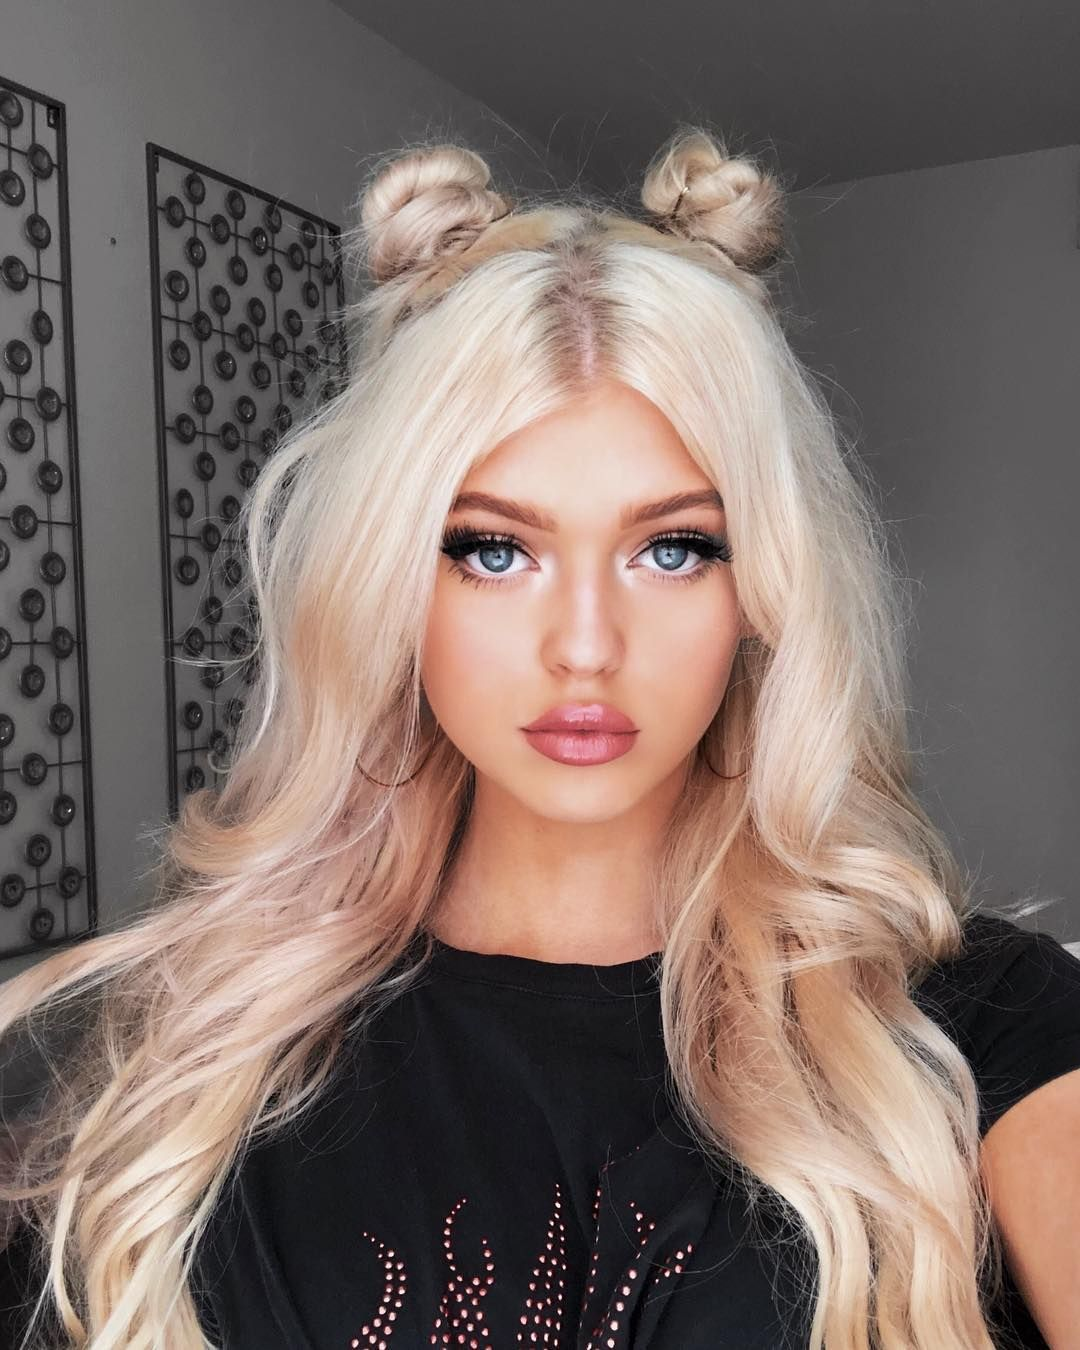 Image of Loren Gray from Pinterest